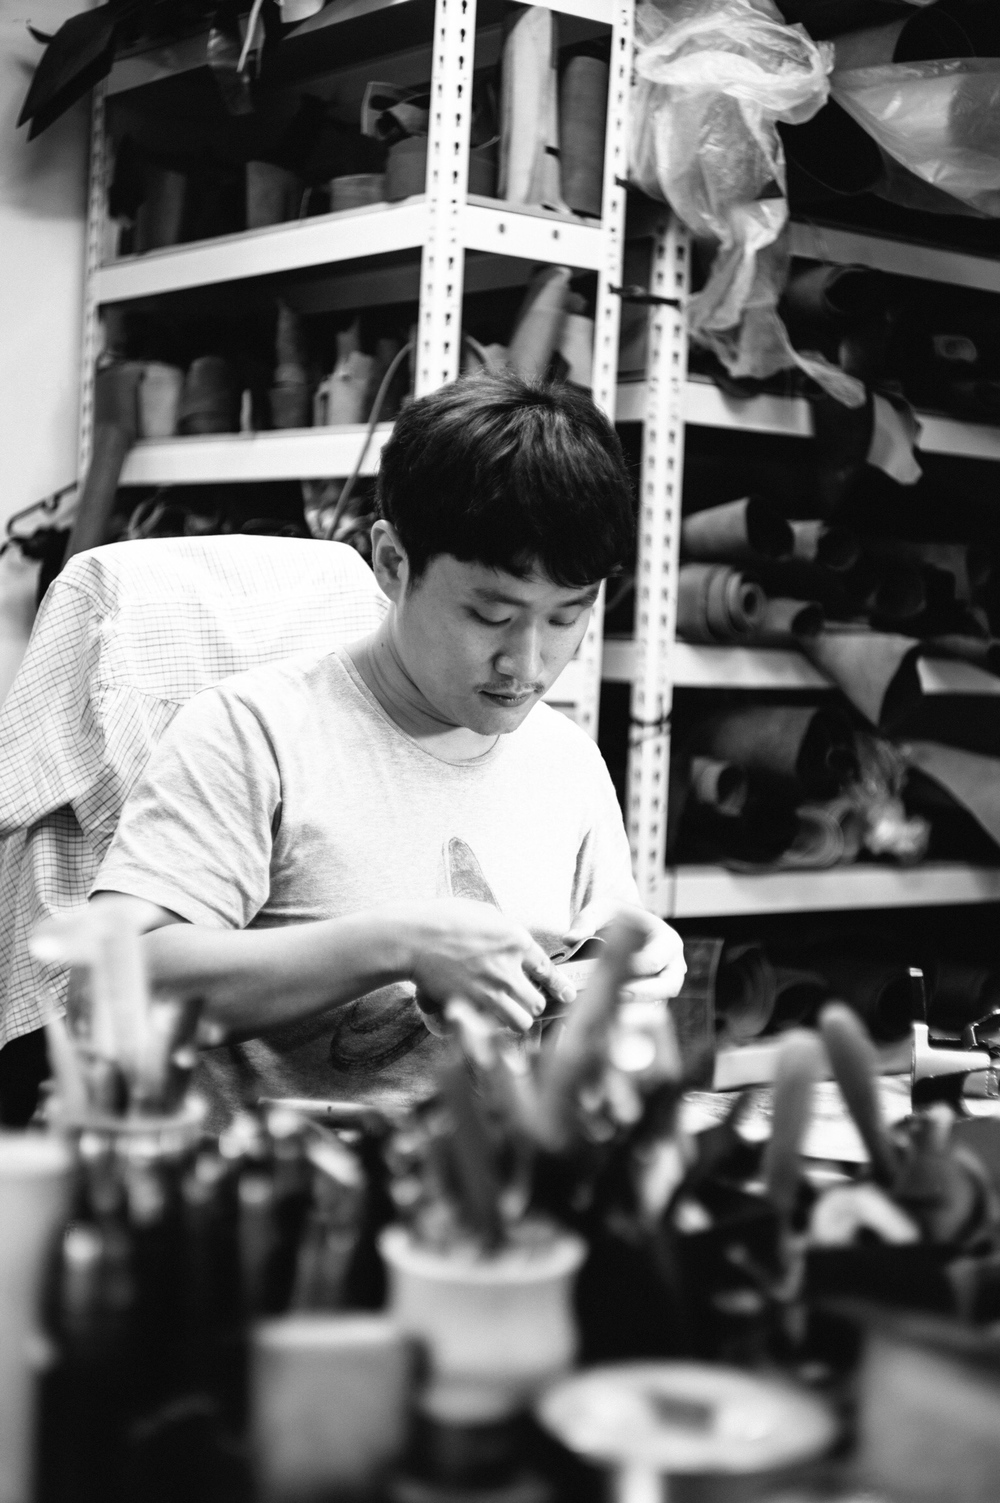 Sejun Kim at his workshop in Seoul, South Korea. I've corresponded with Sejun for a long time but have never met him, nor seen a photograph until now. I had imagined a wizened old craftsman hunched over his traditional Korean workbench. But reality is obviously far different. Every case you order gets Sejun Kim's personal attention and his obsessive eye for detail